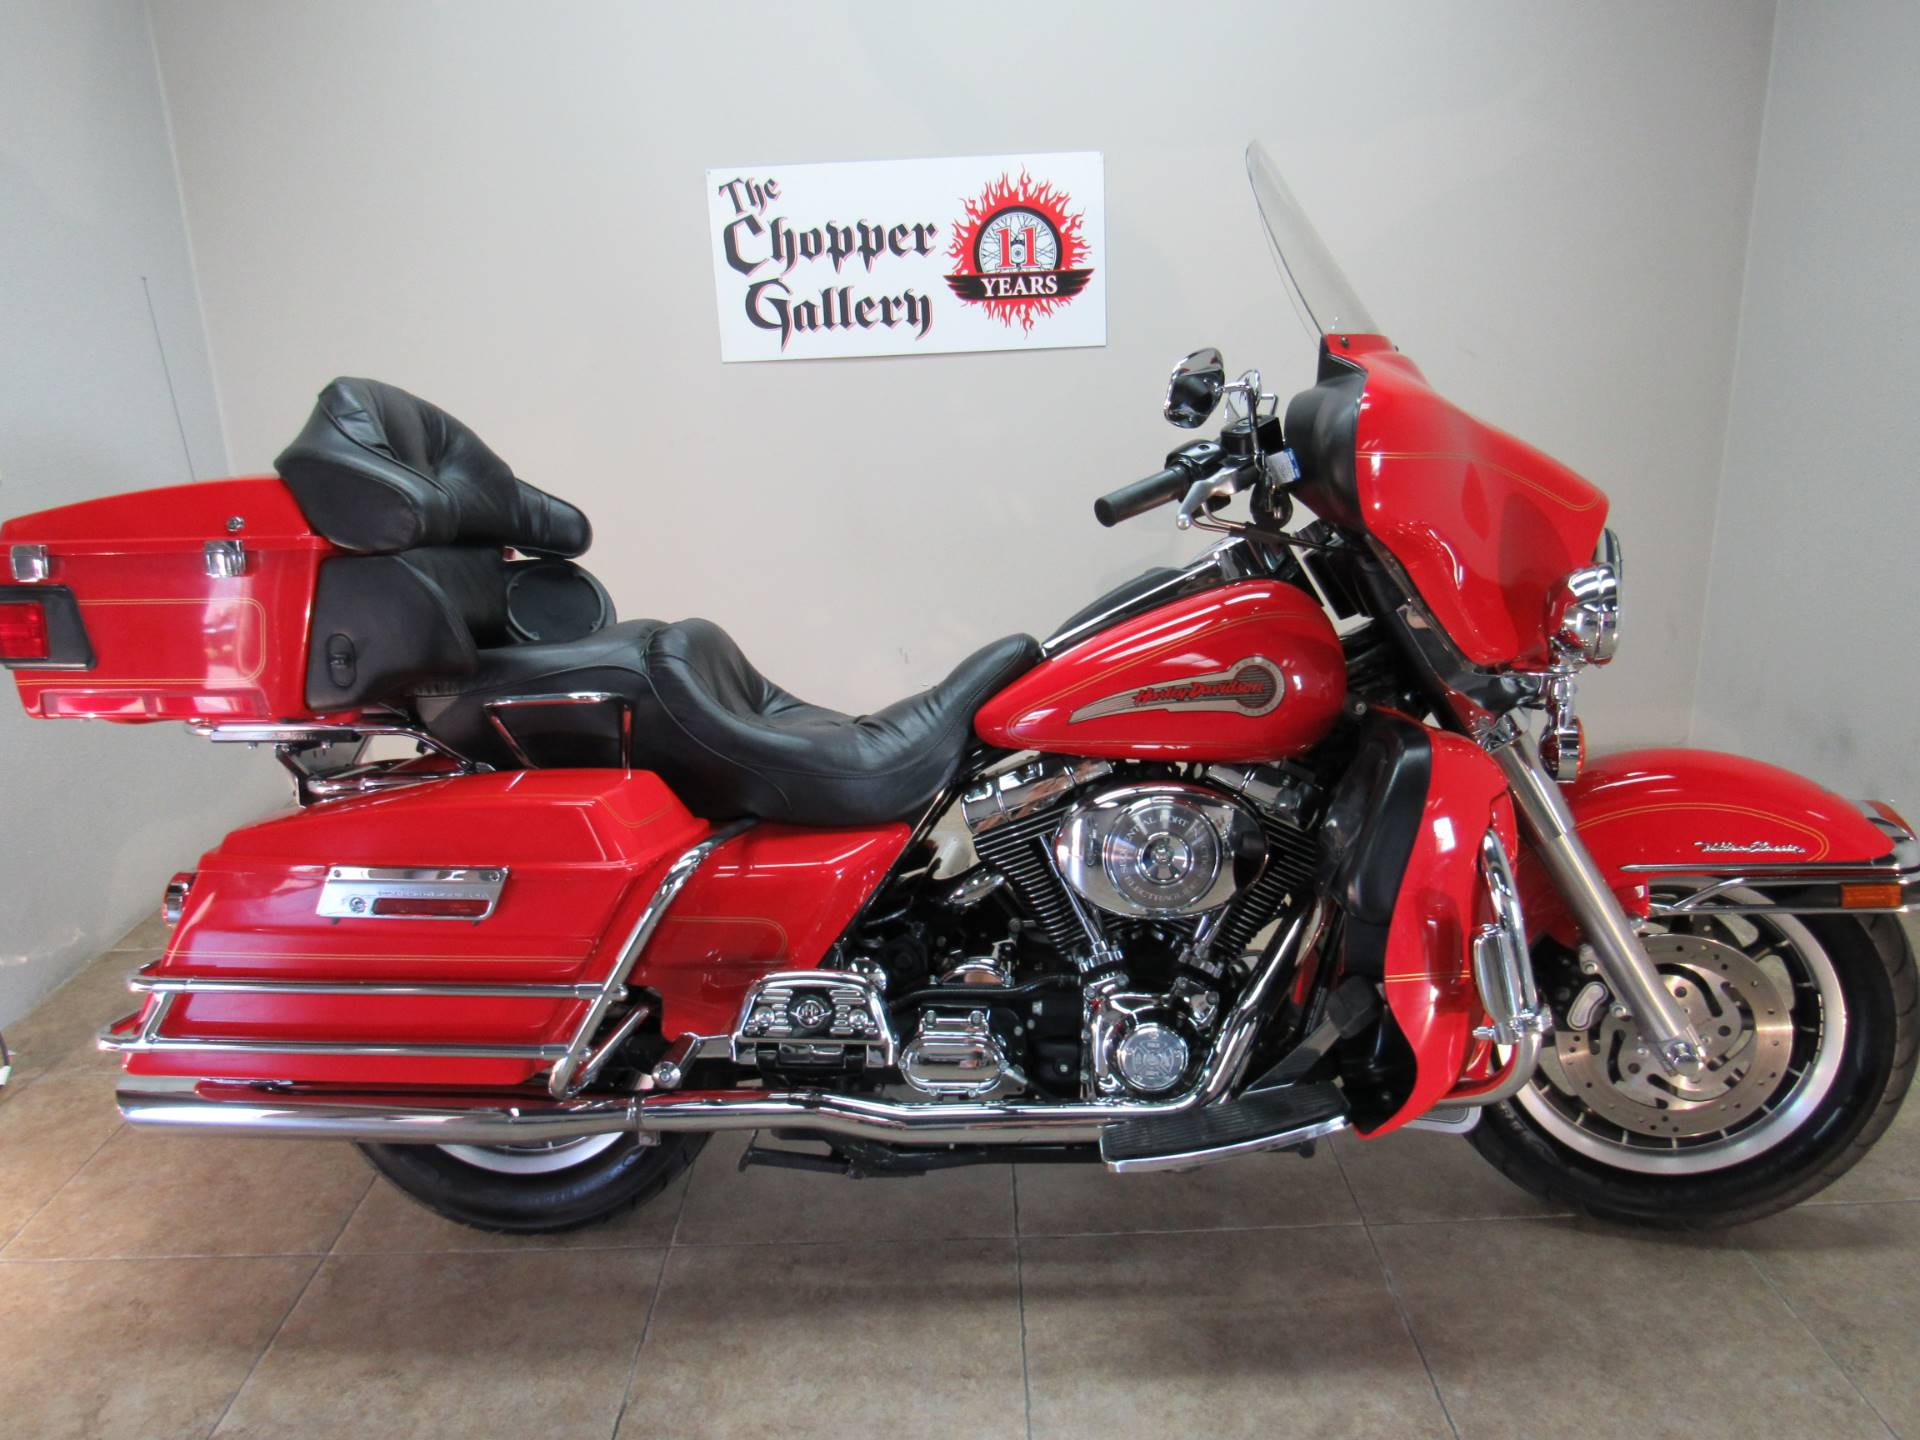 2003 Harley-Davidson Firefighter Special Edition in Temecula, California - Photo 1